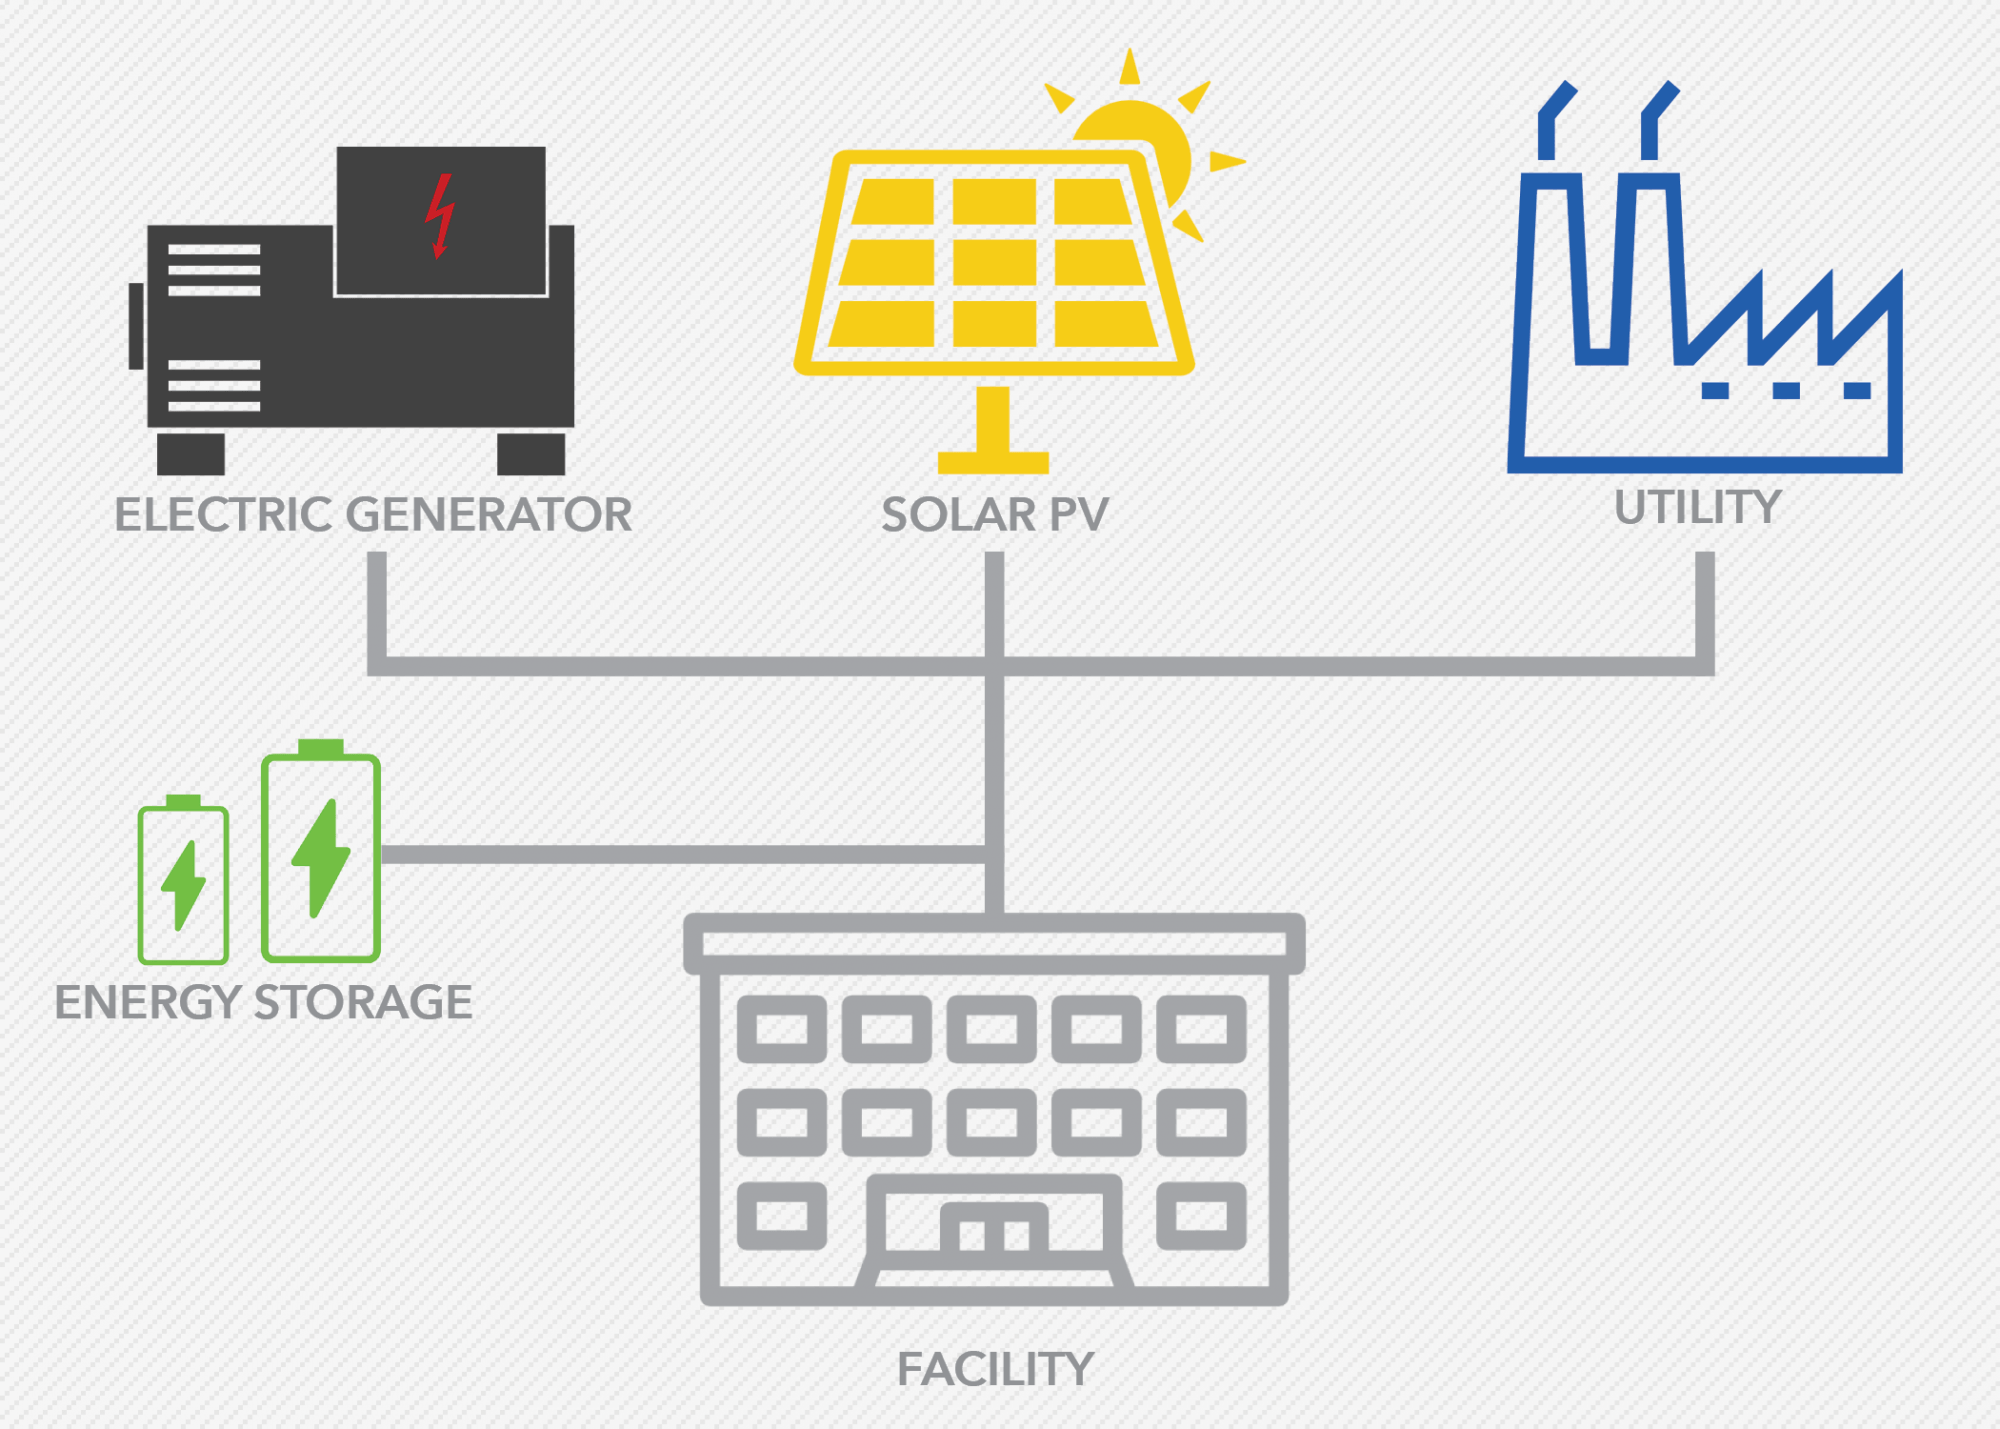 Process infographic describing how solar microgrids connect with a utility